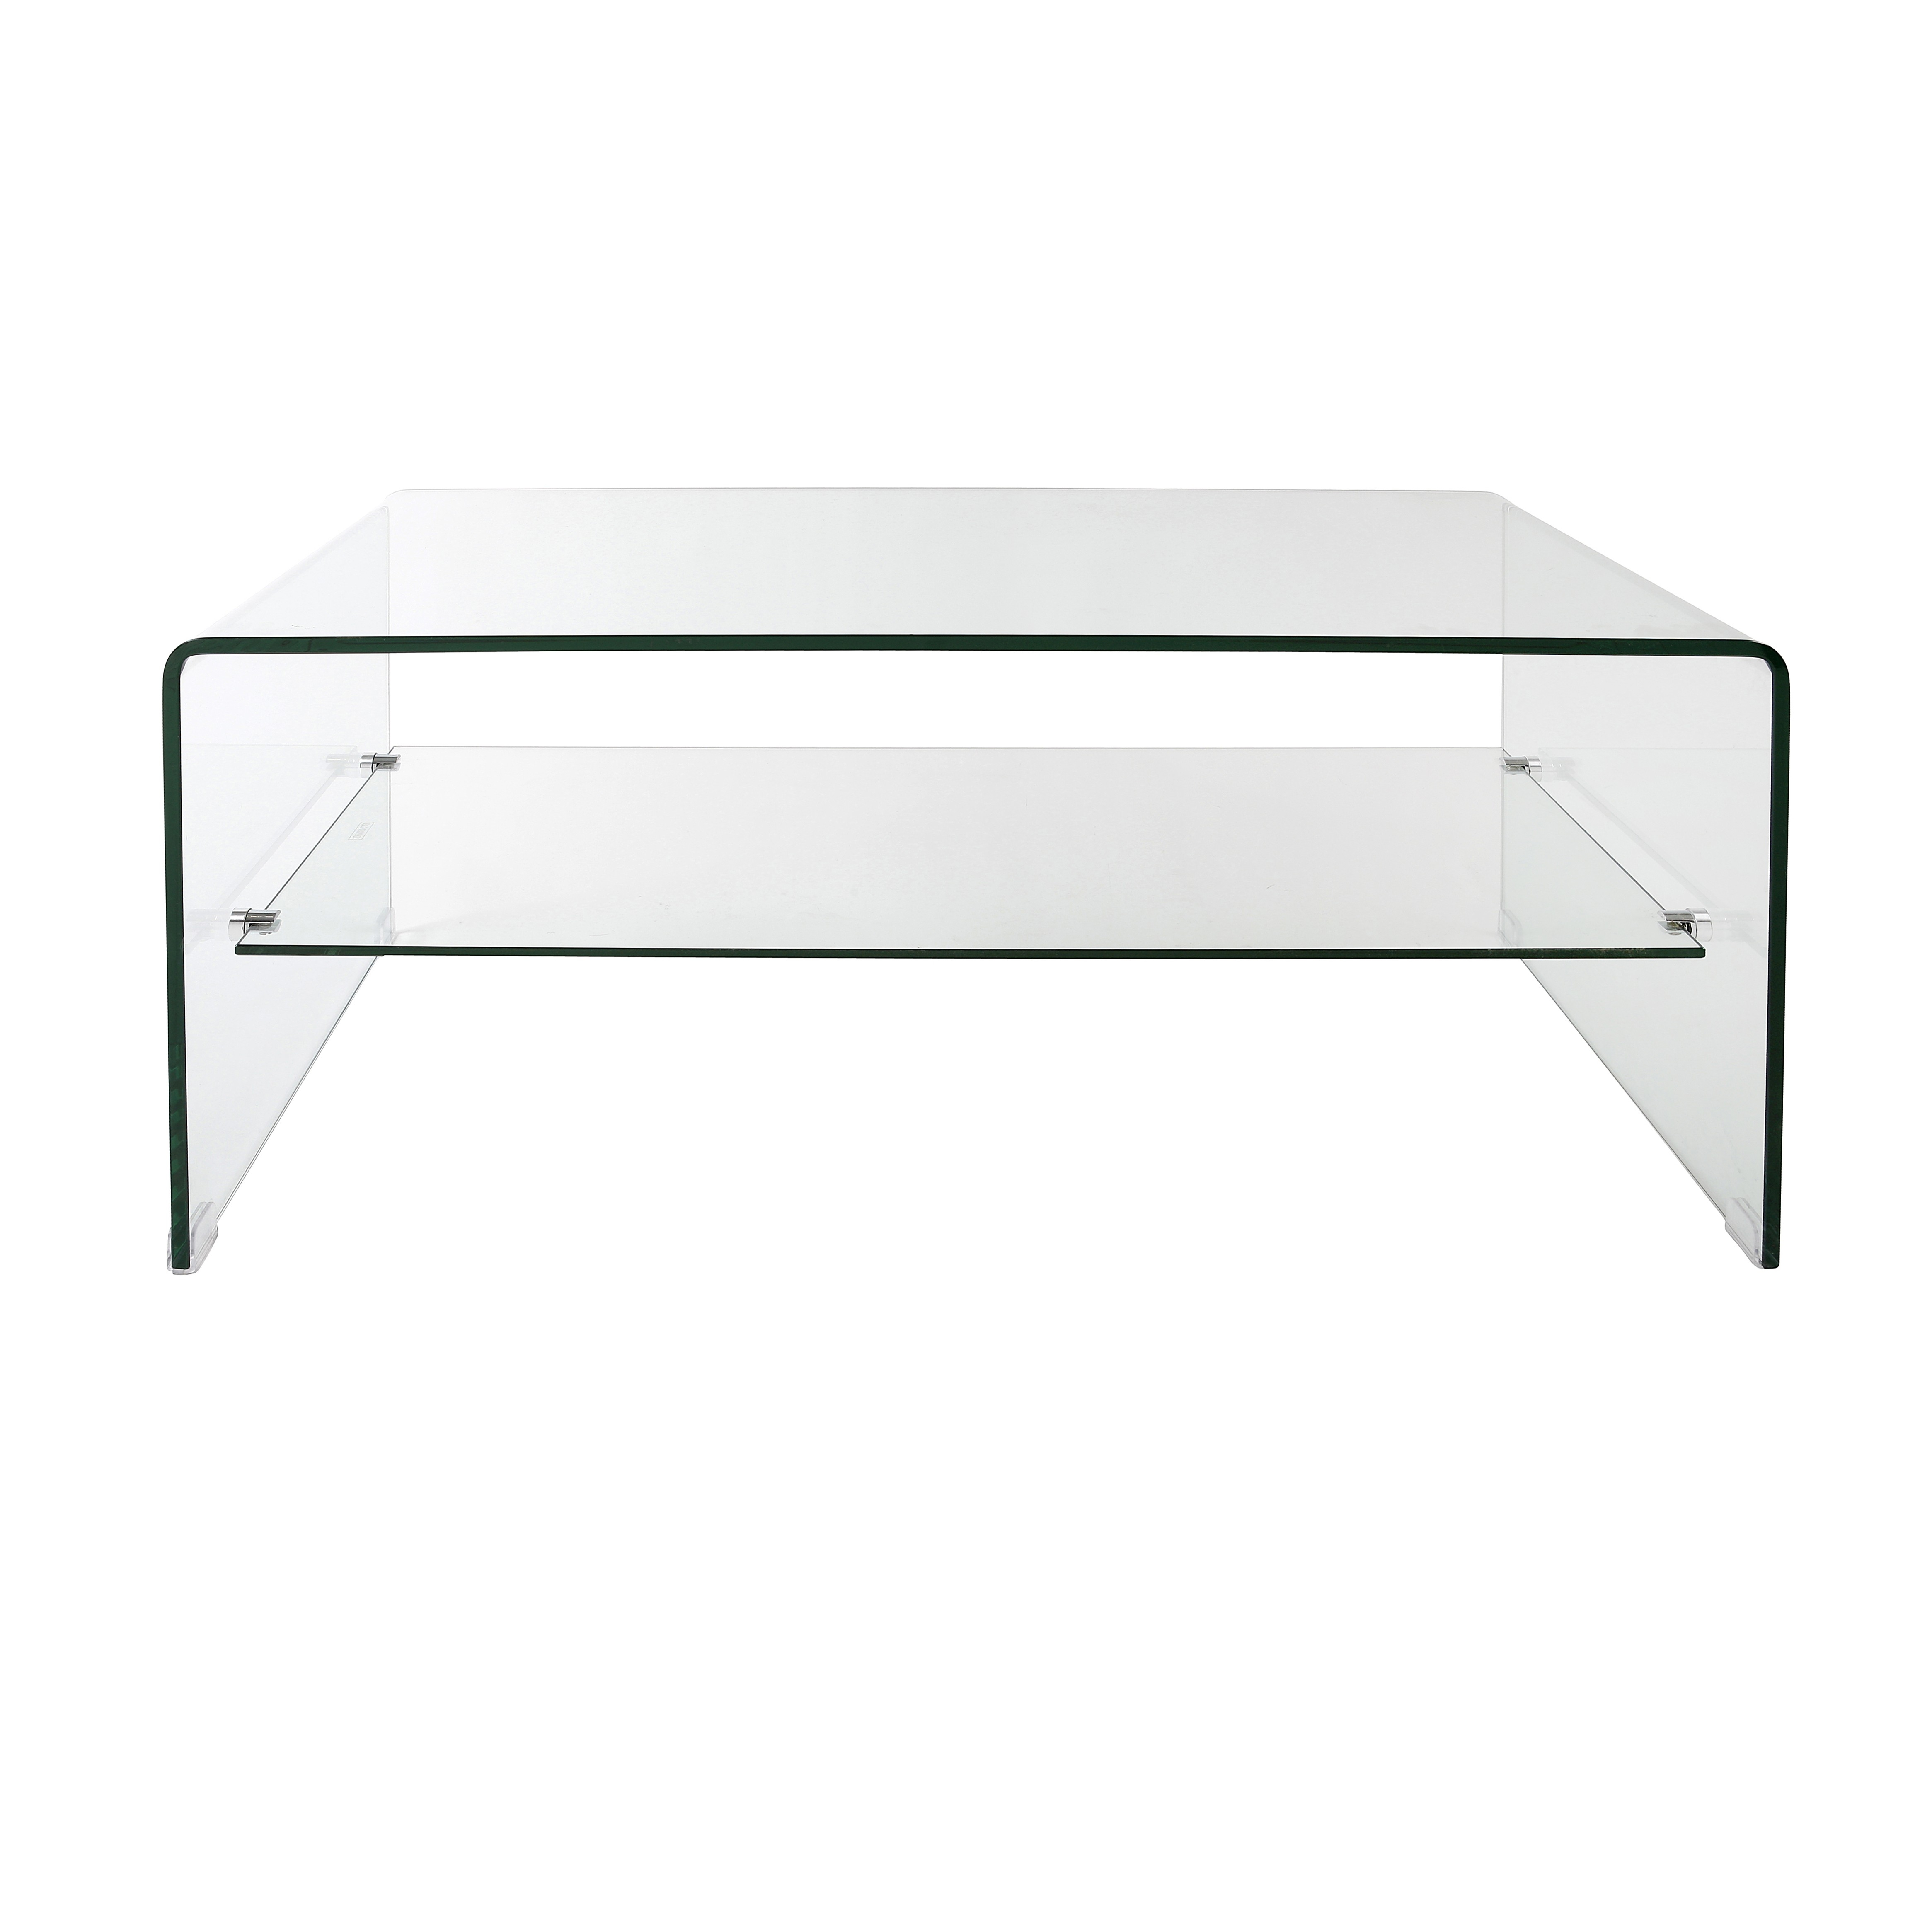 Modern Rectangle Clear Acrylic Coffee Table Come With Shelf Design regarding Modern Acrylic Coffee Tables (Image 24 of 30)